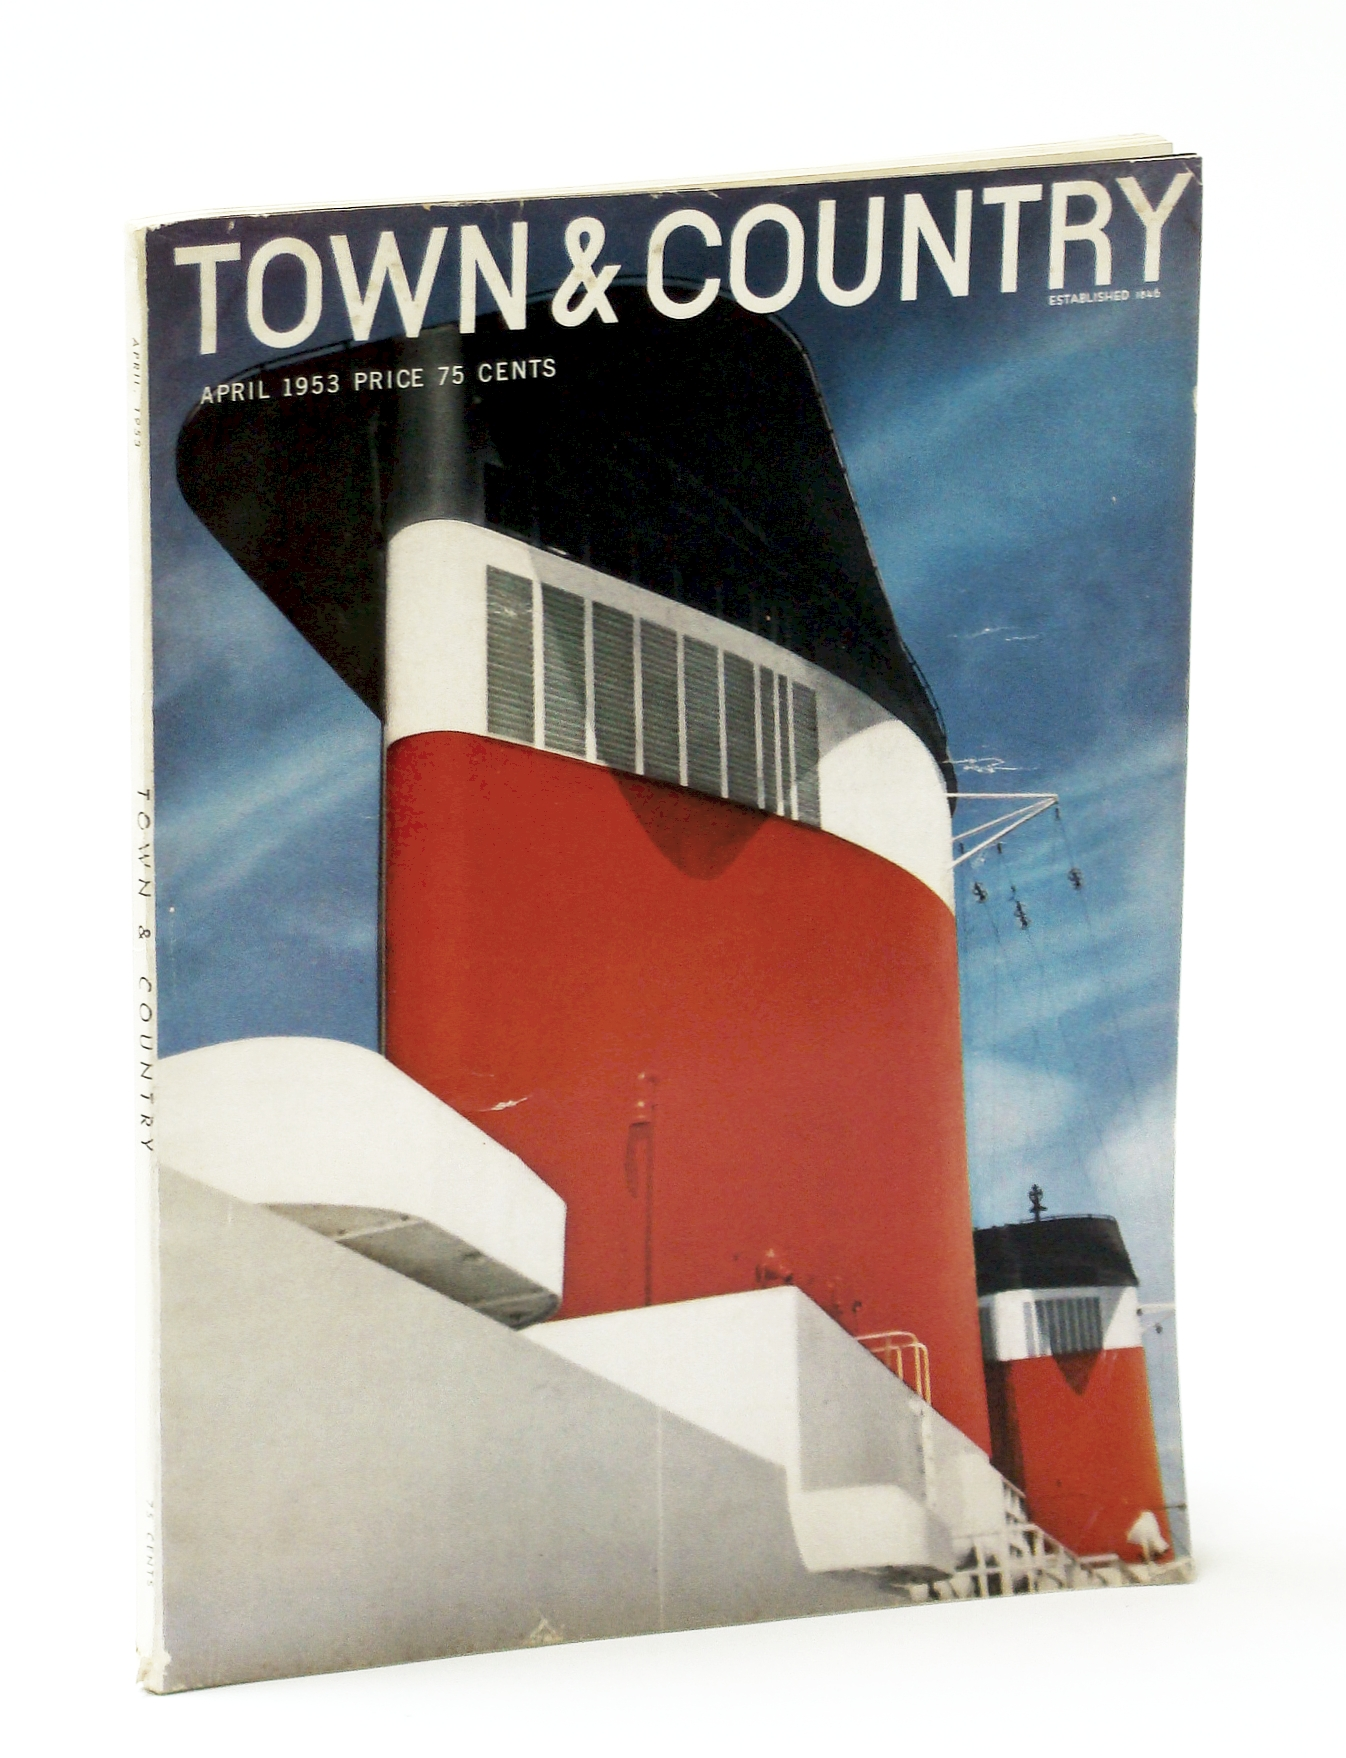 Image for Town & Country Magazine, April (Apr.) 1953, Vol. 107, No. 4367 - Article By Master Highway Builder and Planner Robert Moses